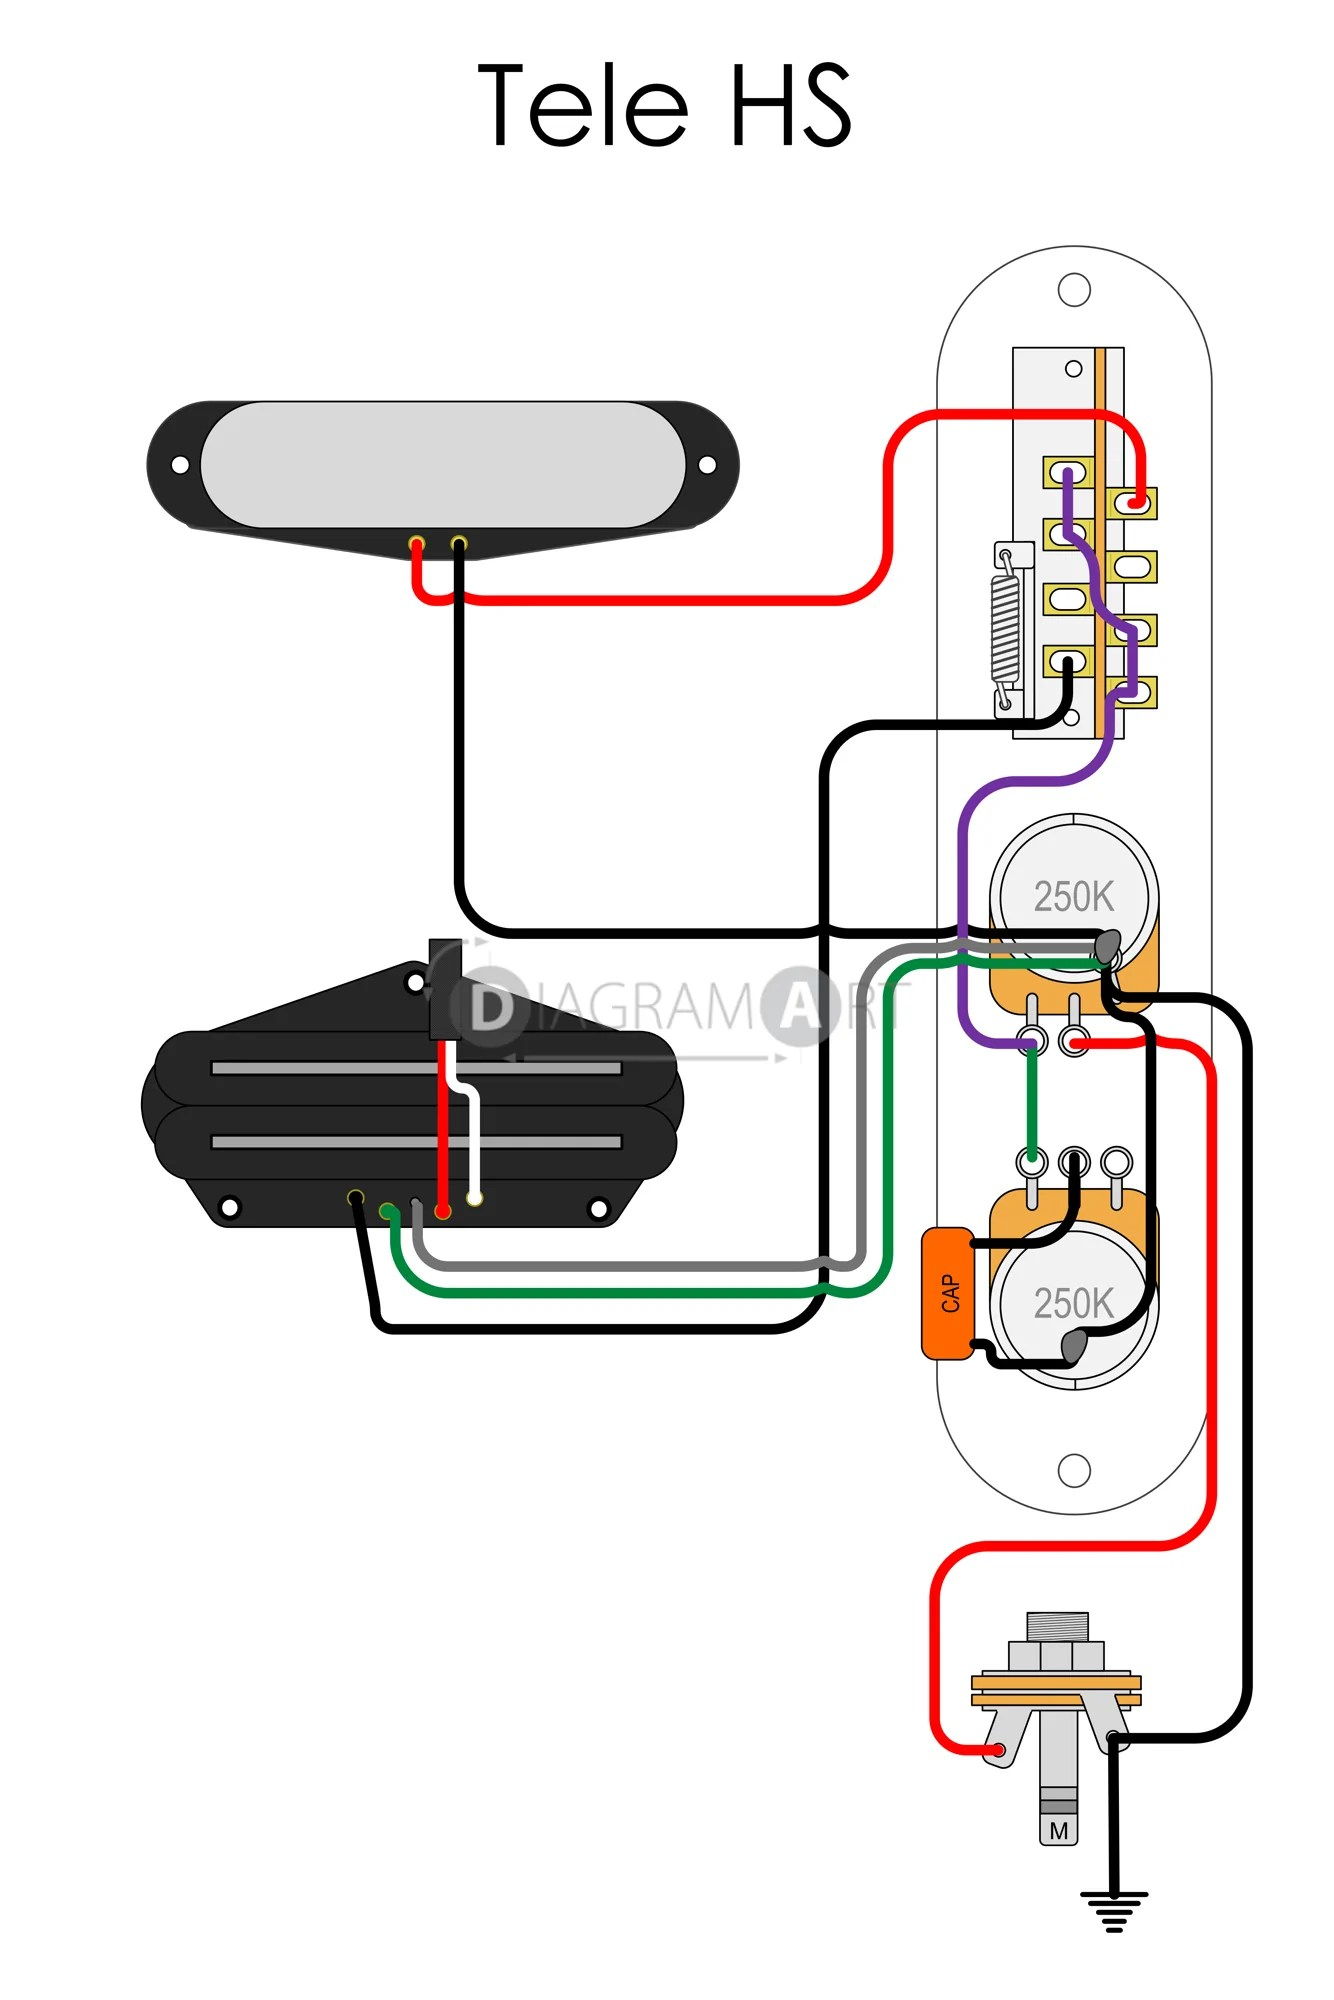 electric guitar wiring tele hs electric circuit diagramart telecaster seymour duncan wiring diagrams hs tele wiring diagram [ 1334 x 2000 Pixel ]